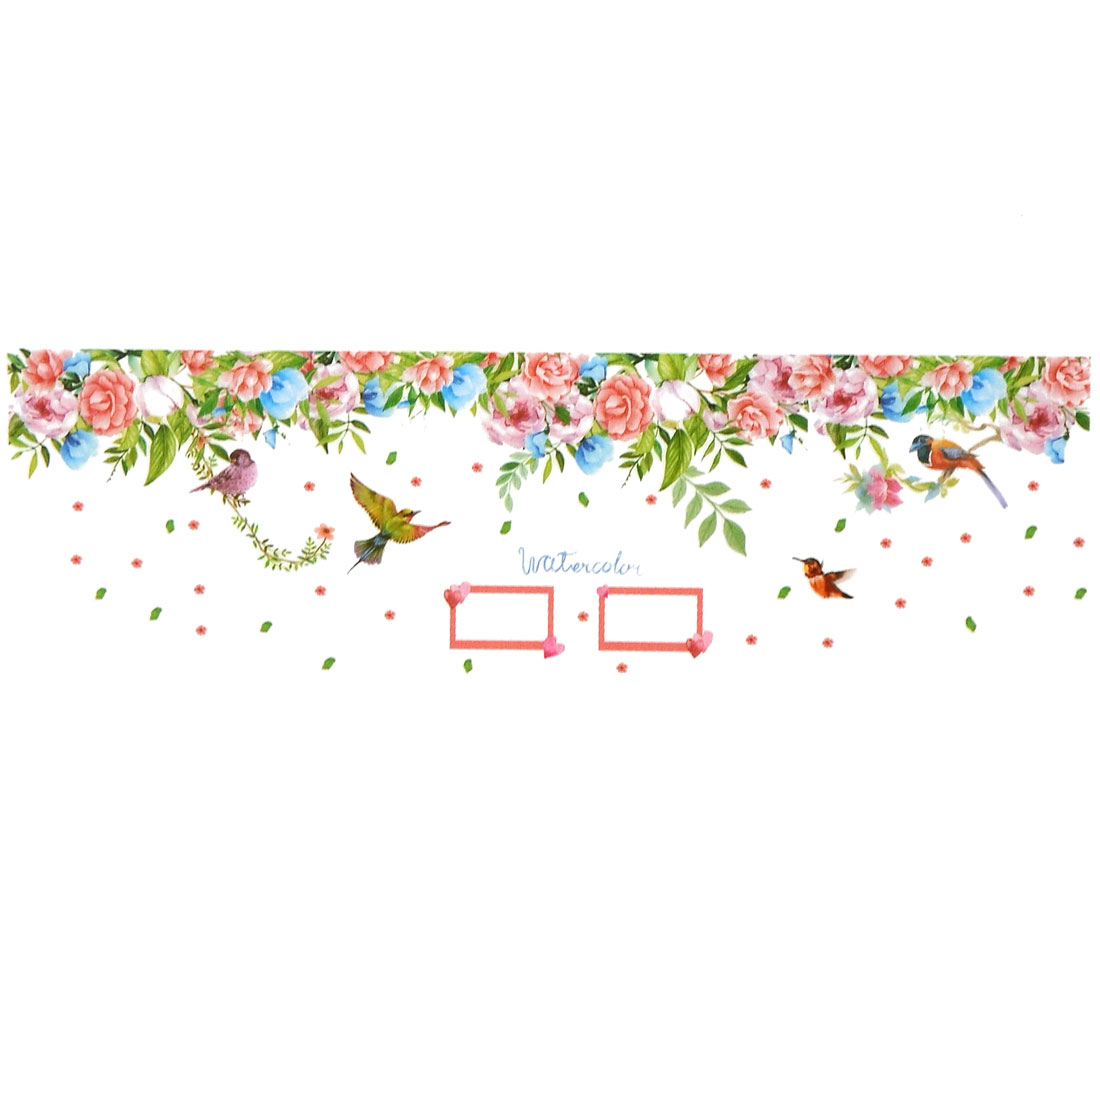 Home PVC Flower Birds Pattern DIY Ornament Wall Sticker Decal Mural 60 x 90cm